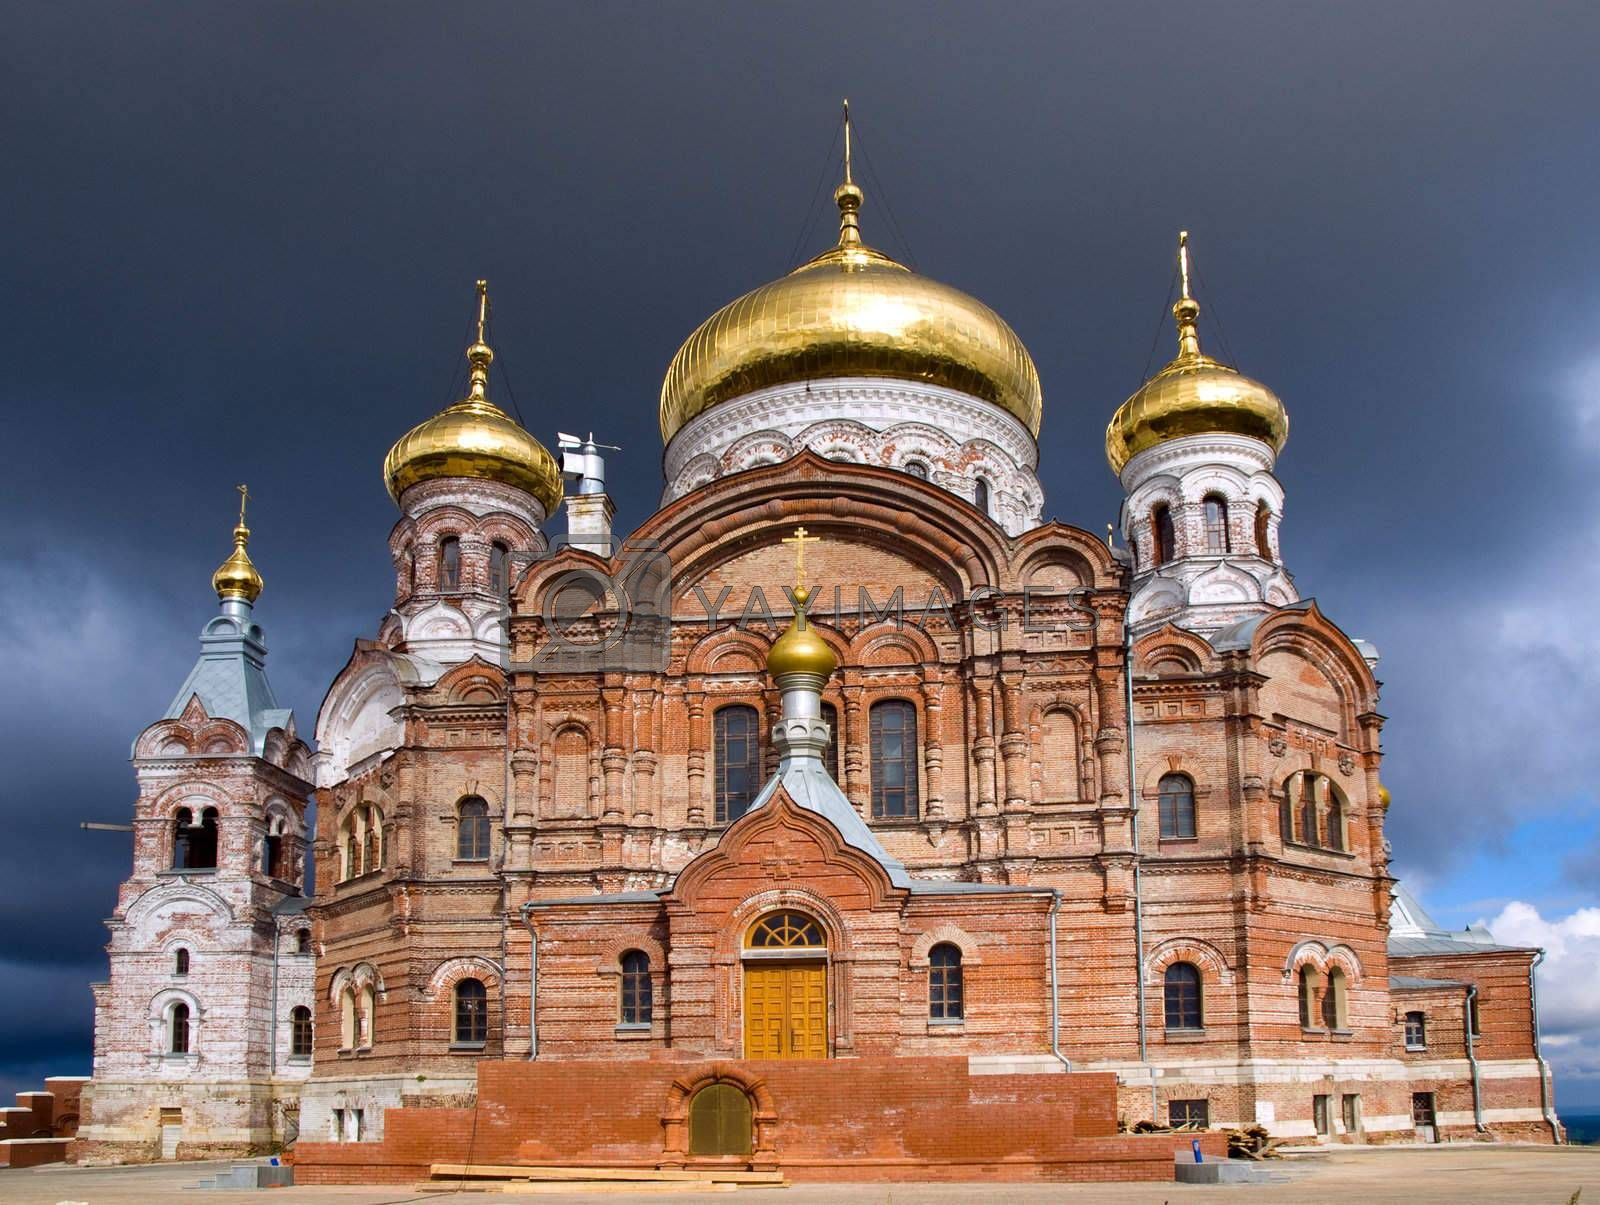 Orthodox temple with gold domes